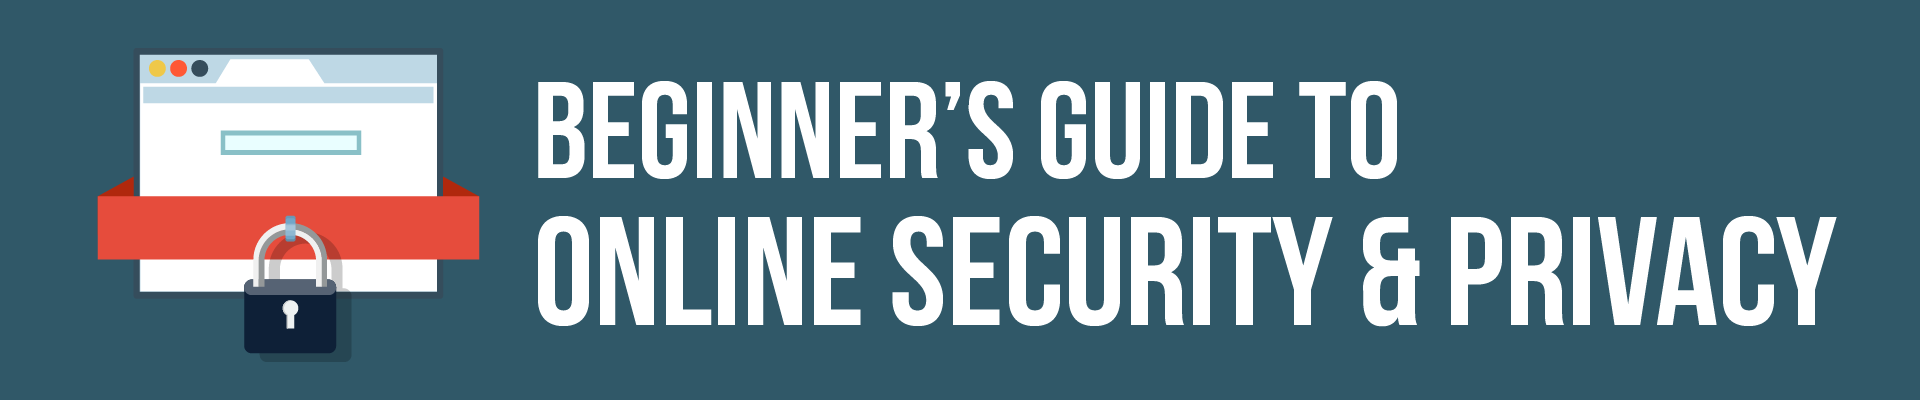 Beginner's Guide to Online Security and Privacy